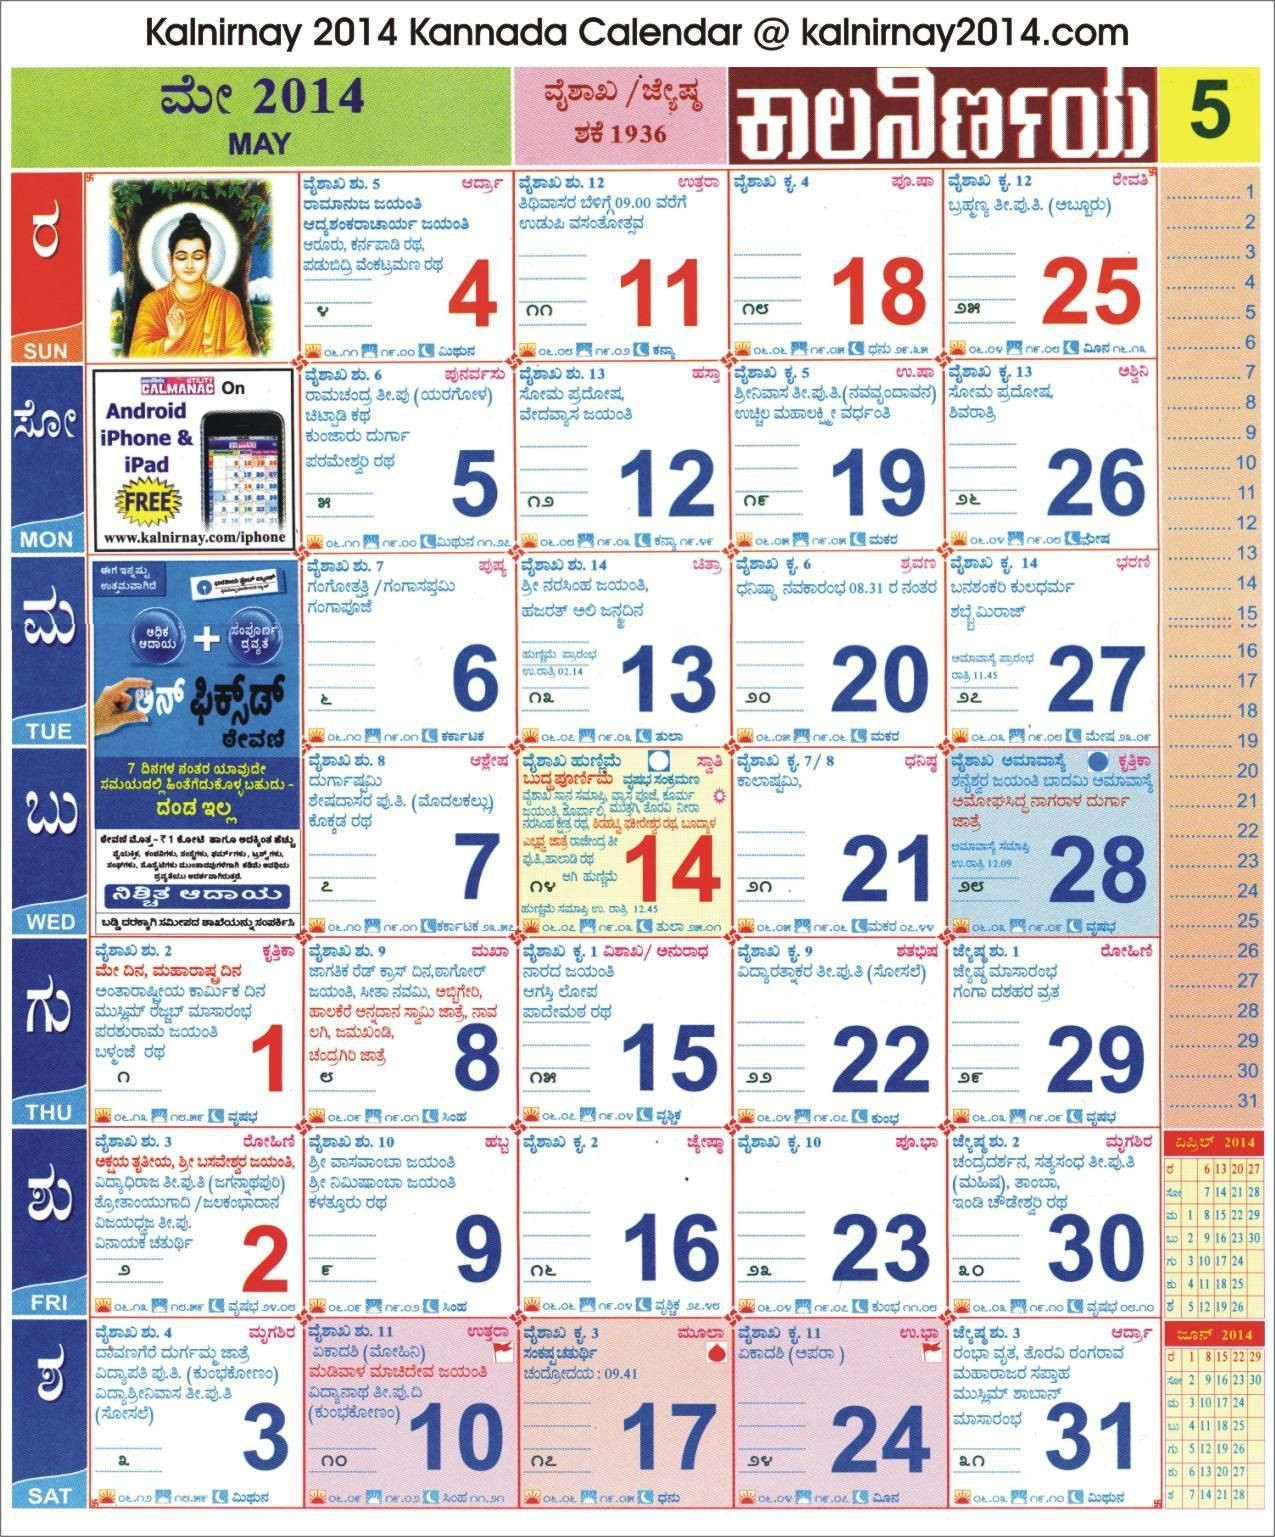 May 2014 Kannada kalnirnay Calendar October 2014 Calendar Menu Website Menu Board